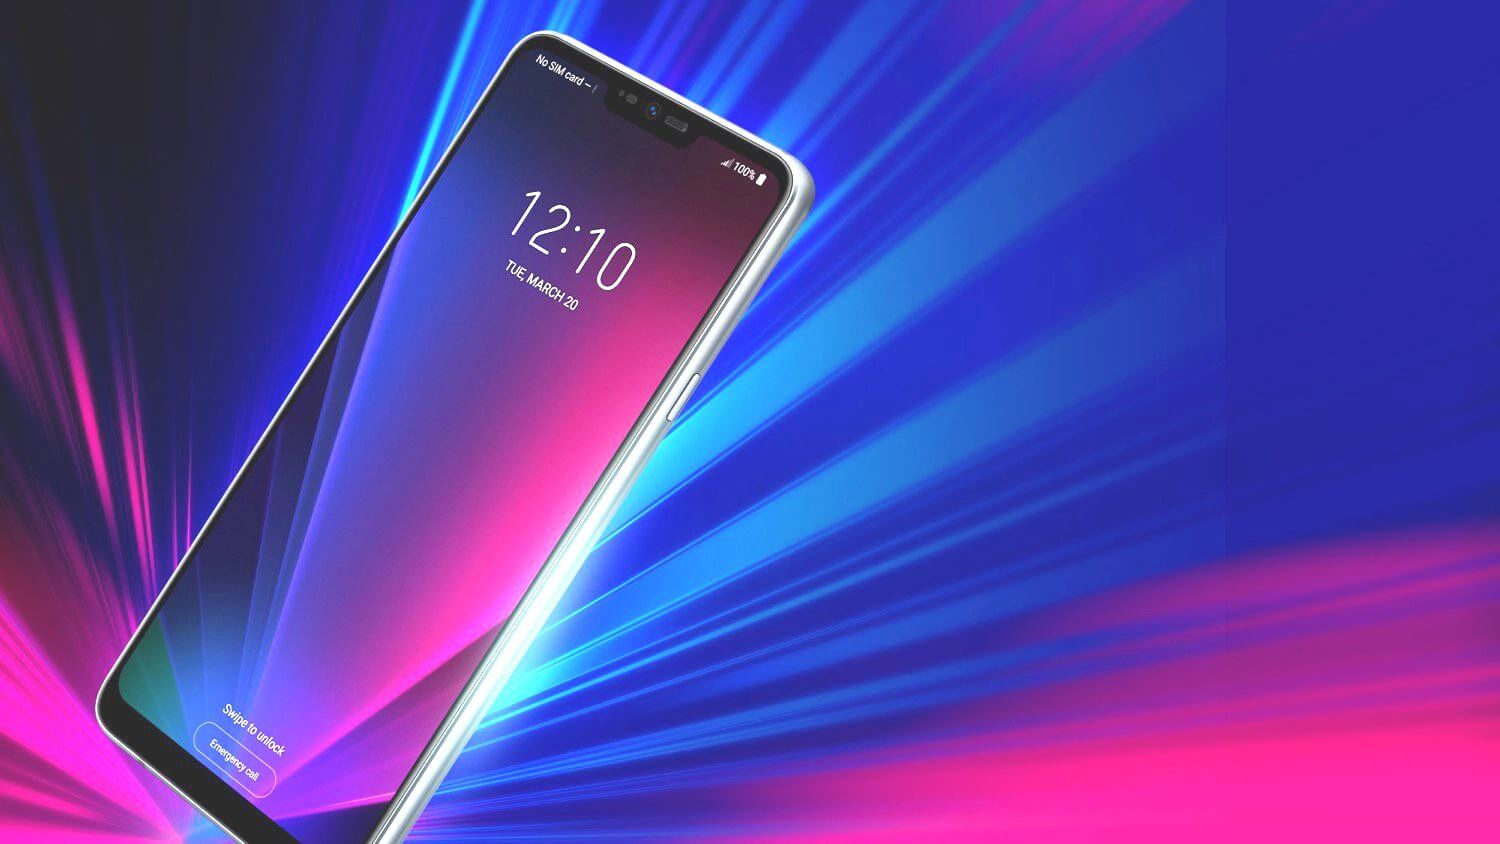 LG G7 ThinQ leak 1 - Certificação do LG G7 ThinQ na Anatel revela bateria menor do que o esperado